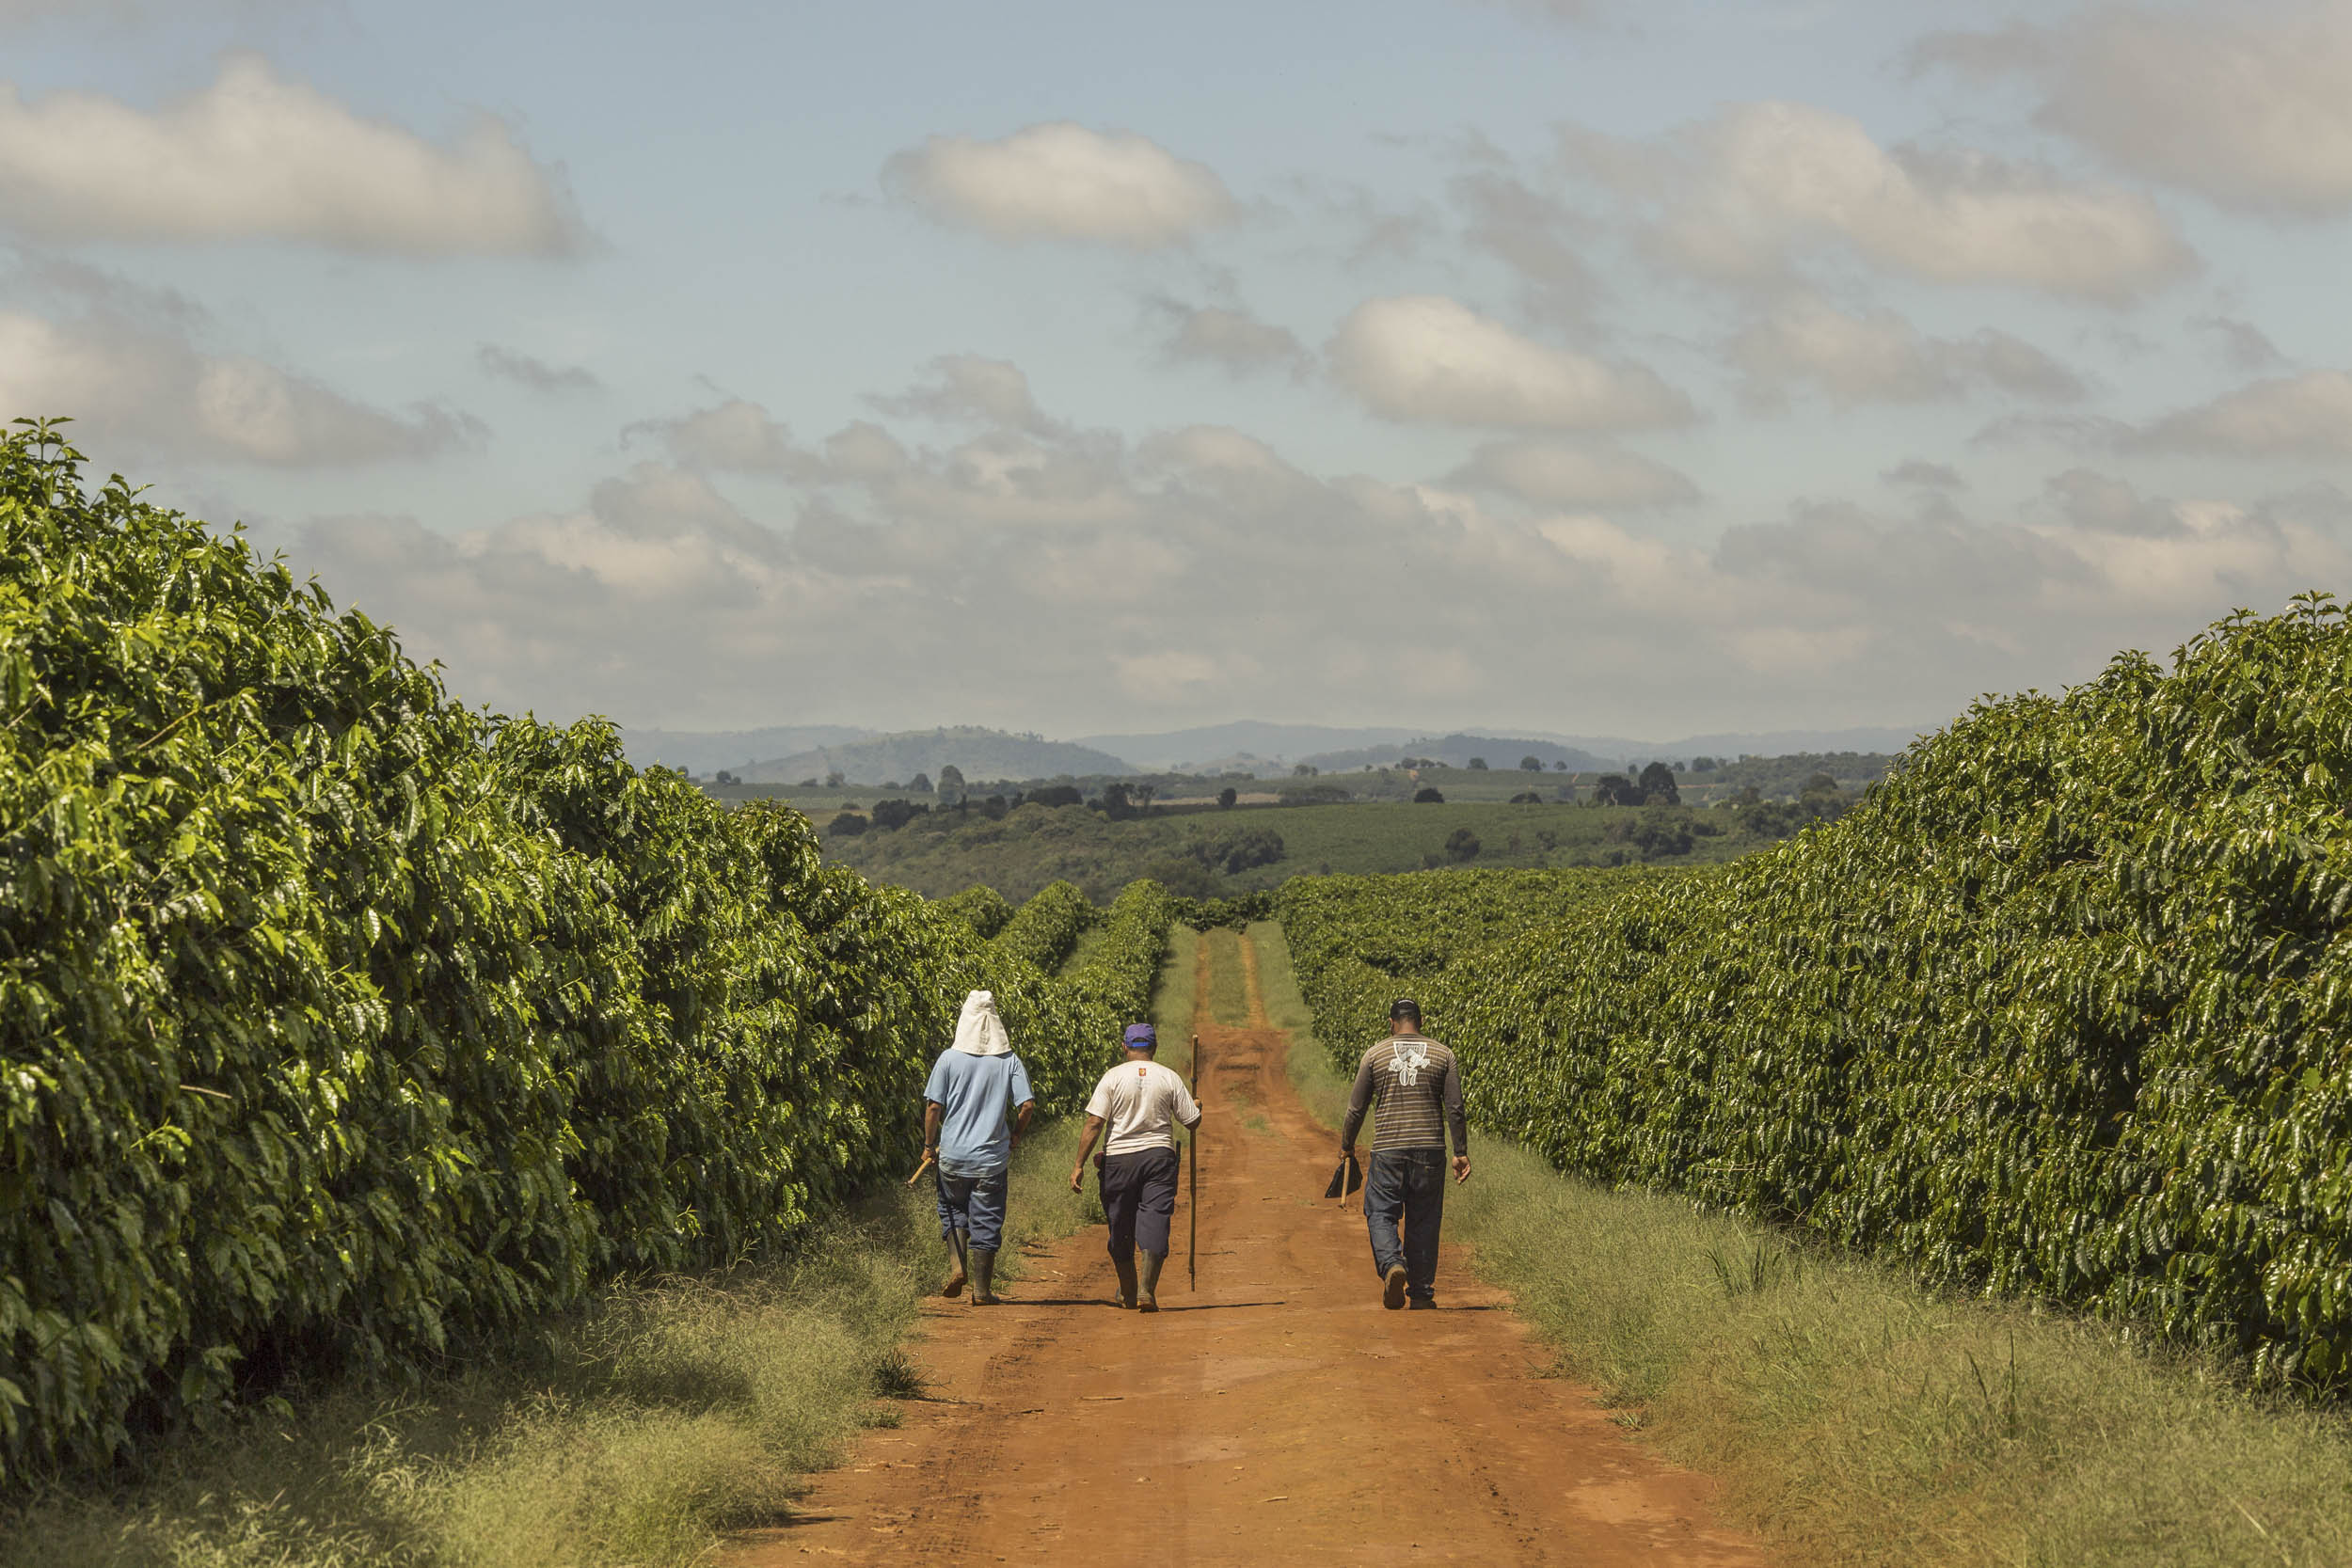 Coffee Operations In The Largest Coffee Growing State In Brazil